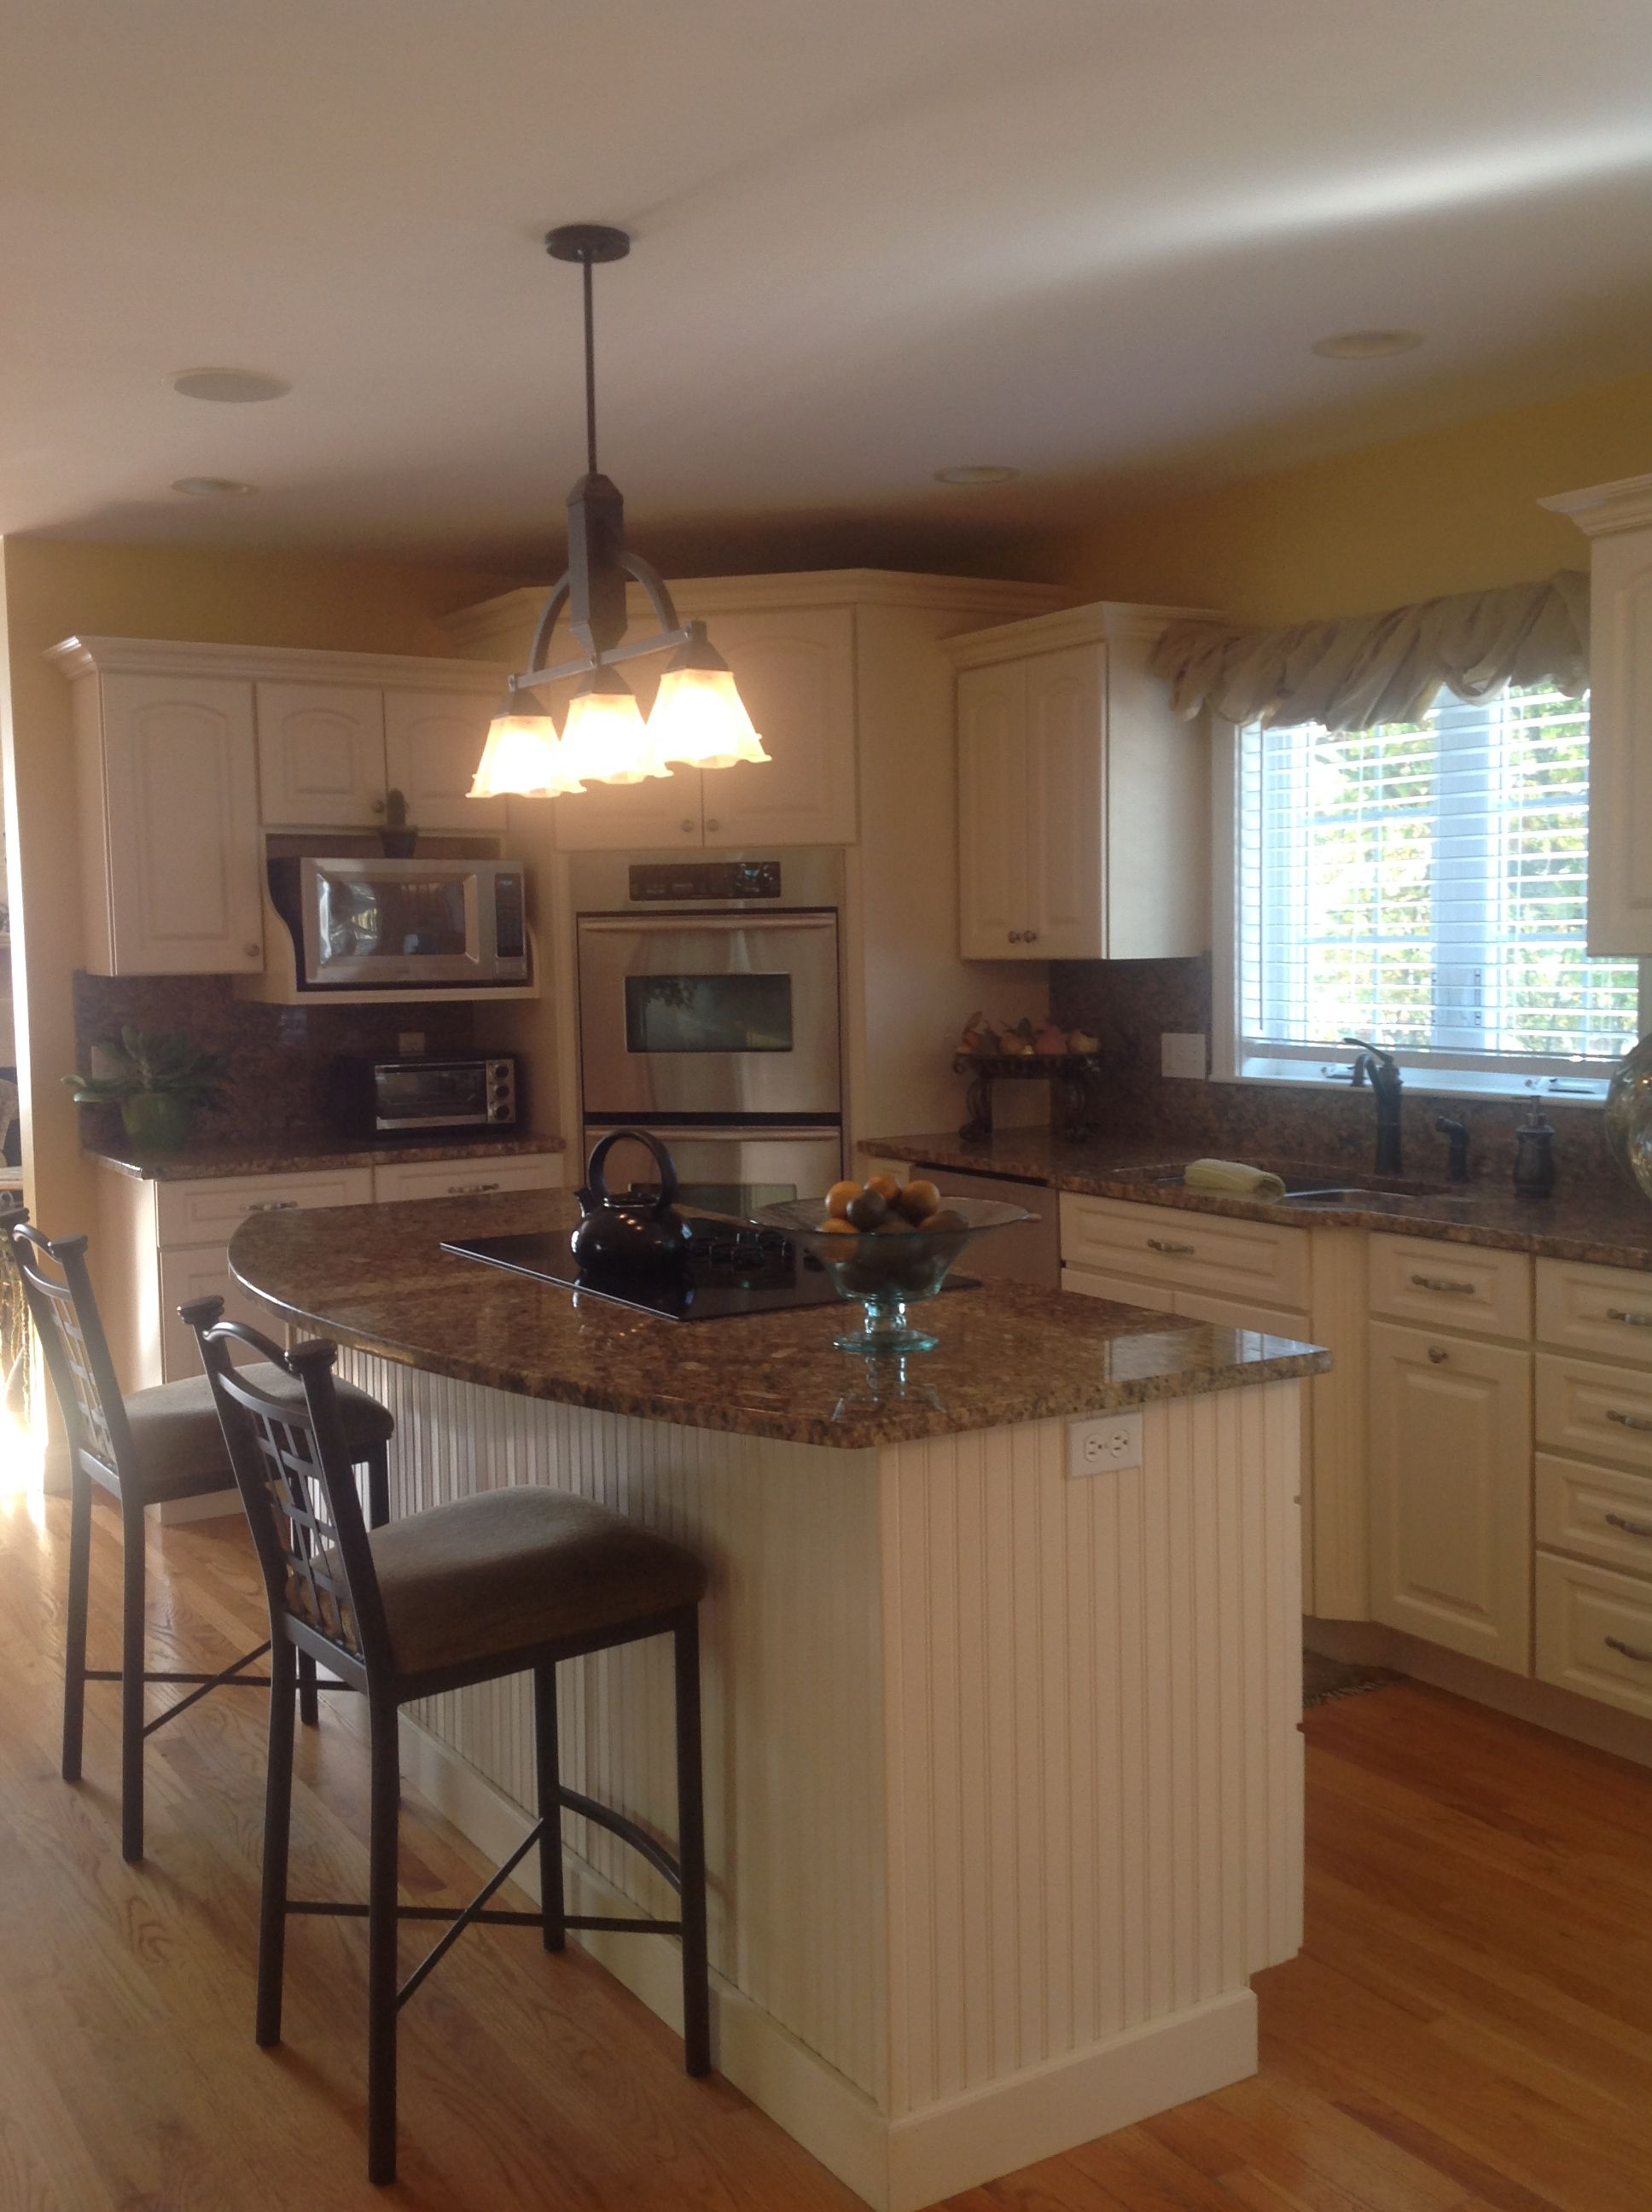 Granite topped kitchen island is warm and inviting